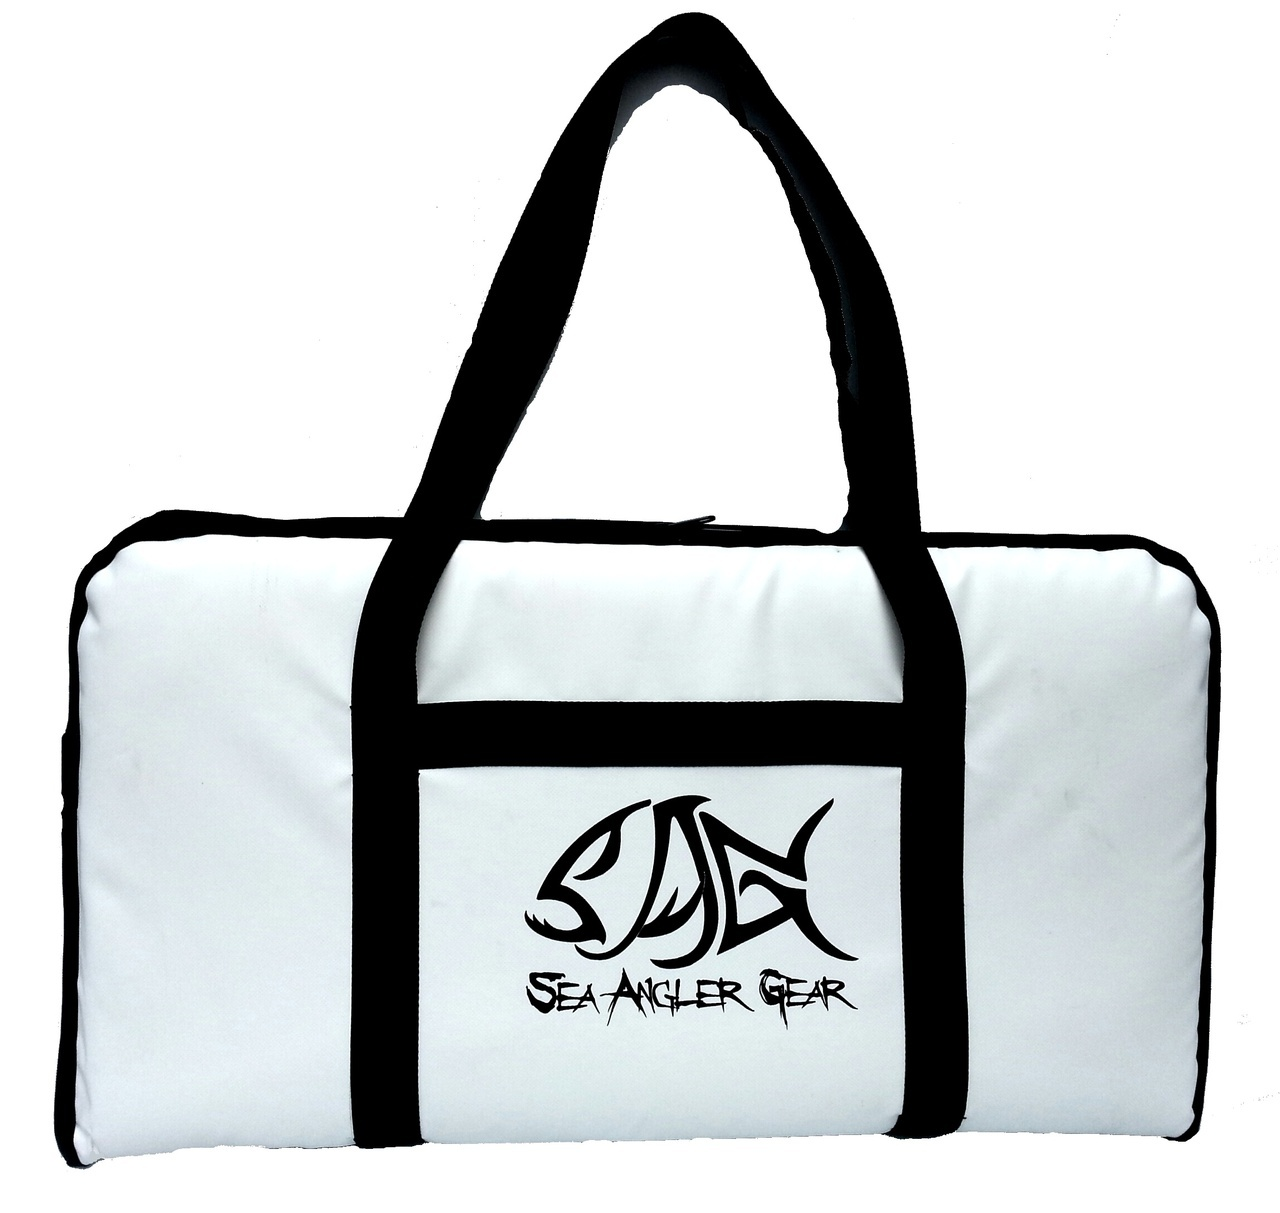 Insulated fishing bag by sea angler gear 48 x 20 for Insulated fish bag